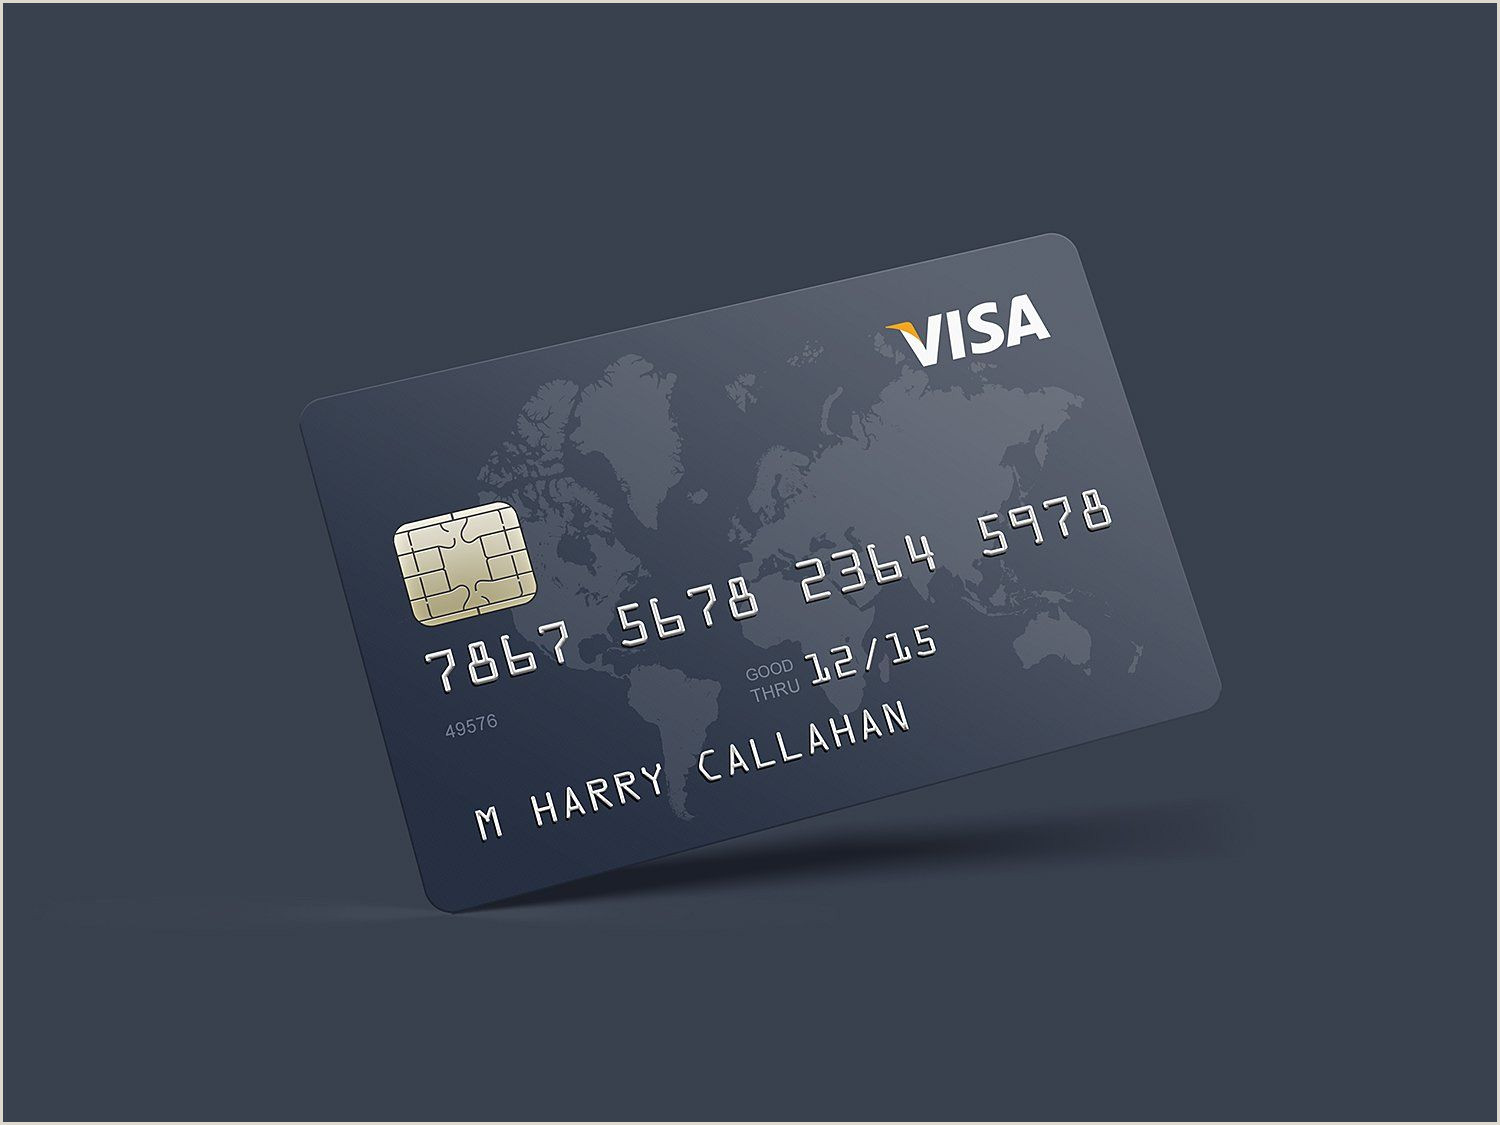 Bad Business Cards Realistic Credit Card Mockup